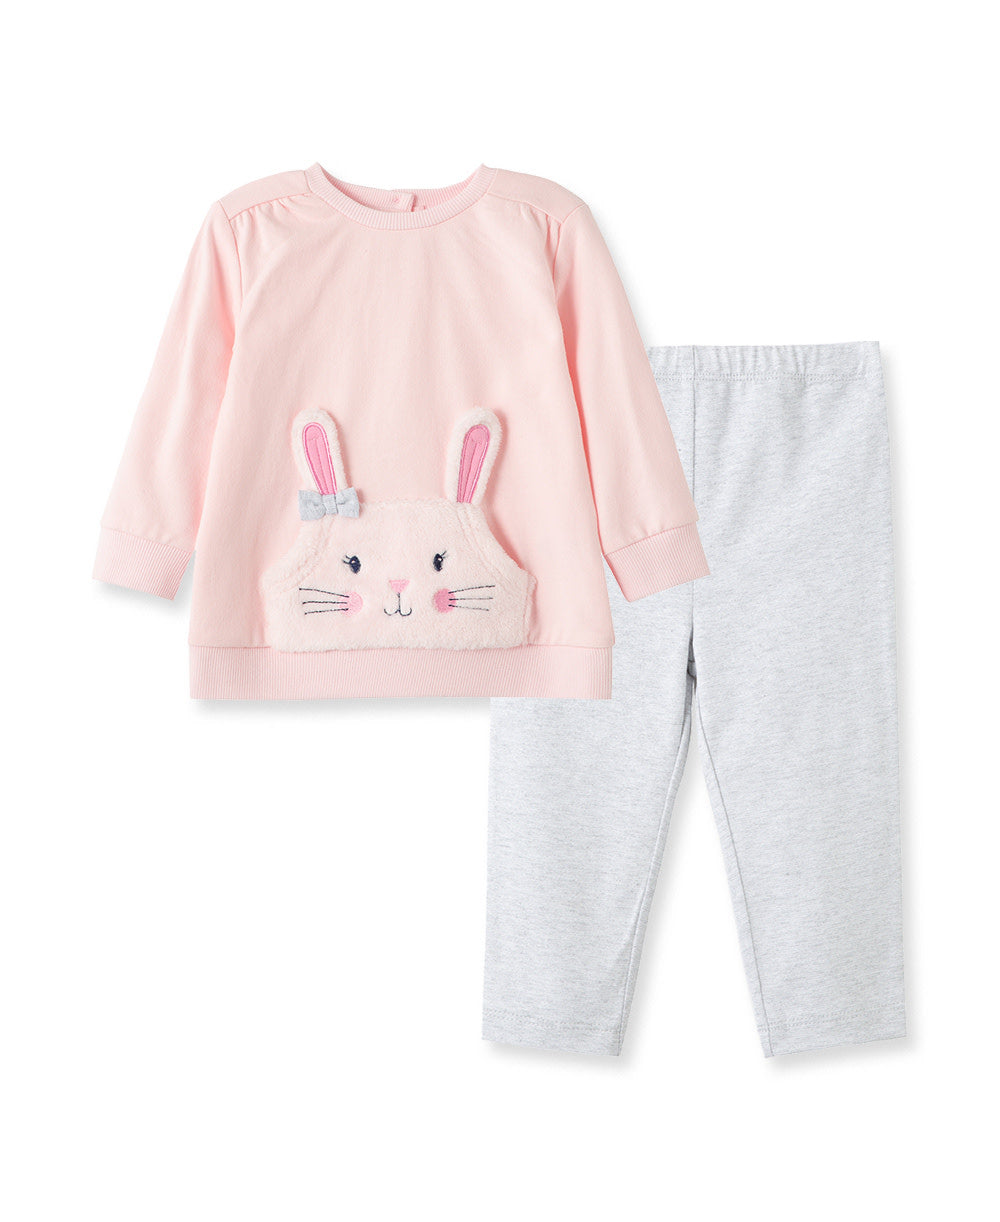 Set (2) - Sweatshirt & Pants Pink Bunny